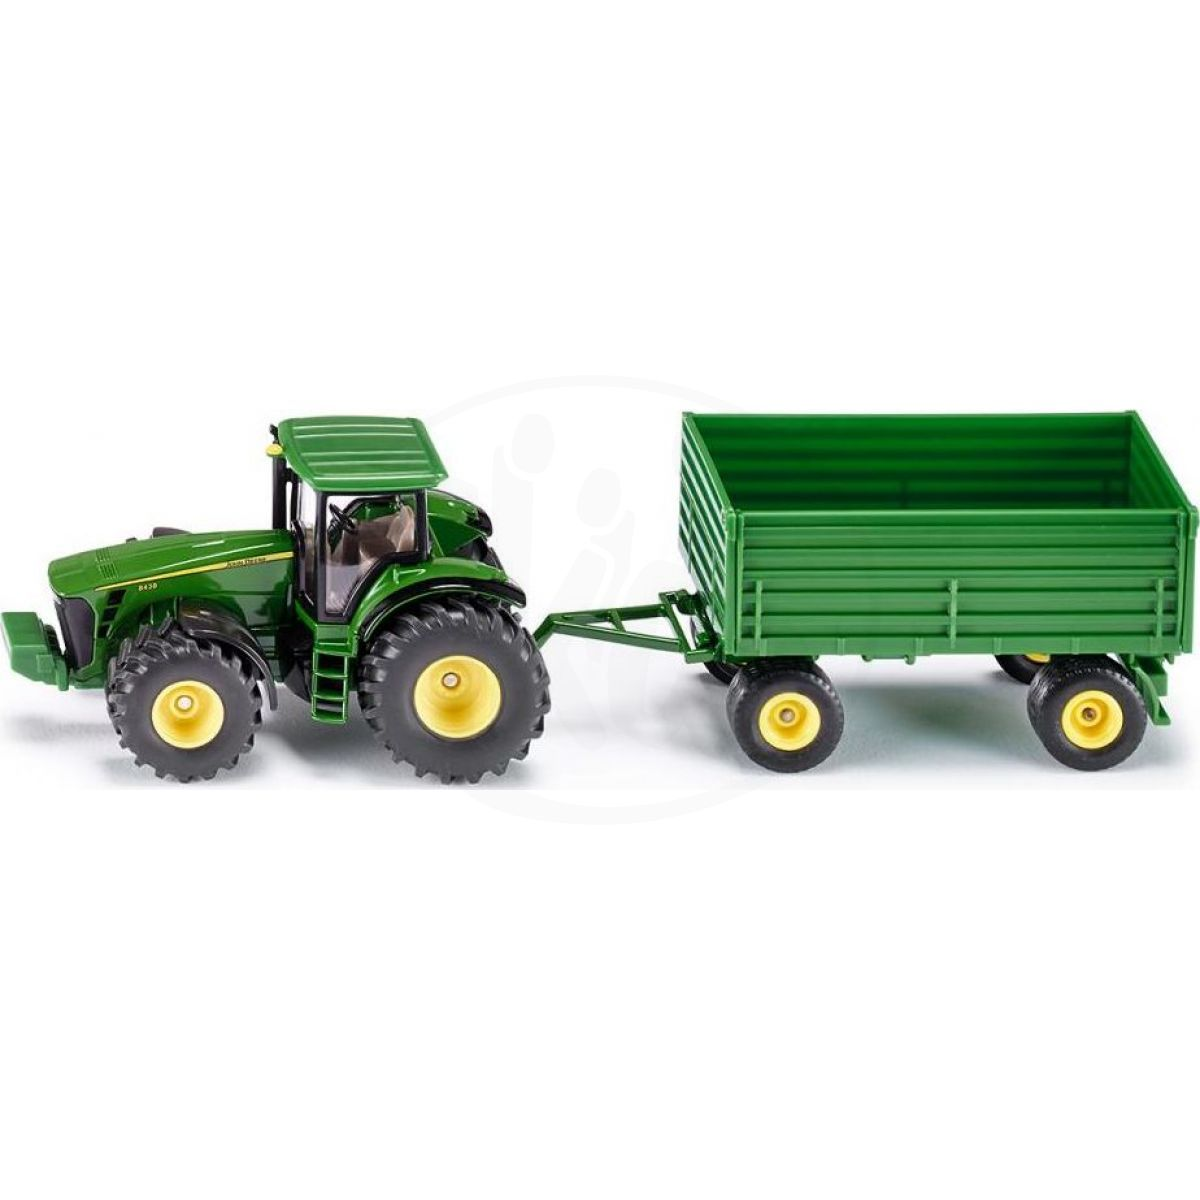 siku farmer 1953 traktor john deere s vlekem 1 50 4kids. Black Bedroom Furniture Sets. Home Design Ideas